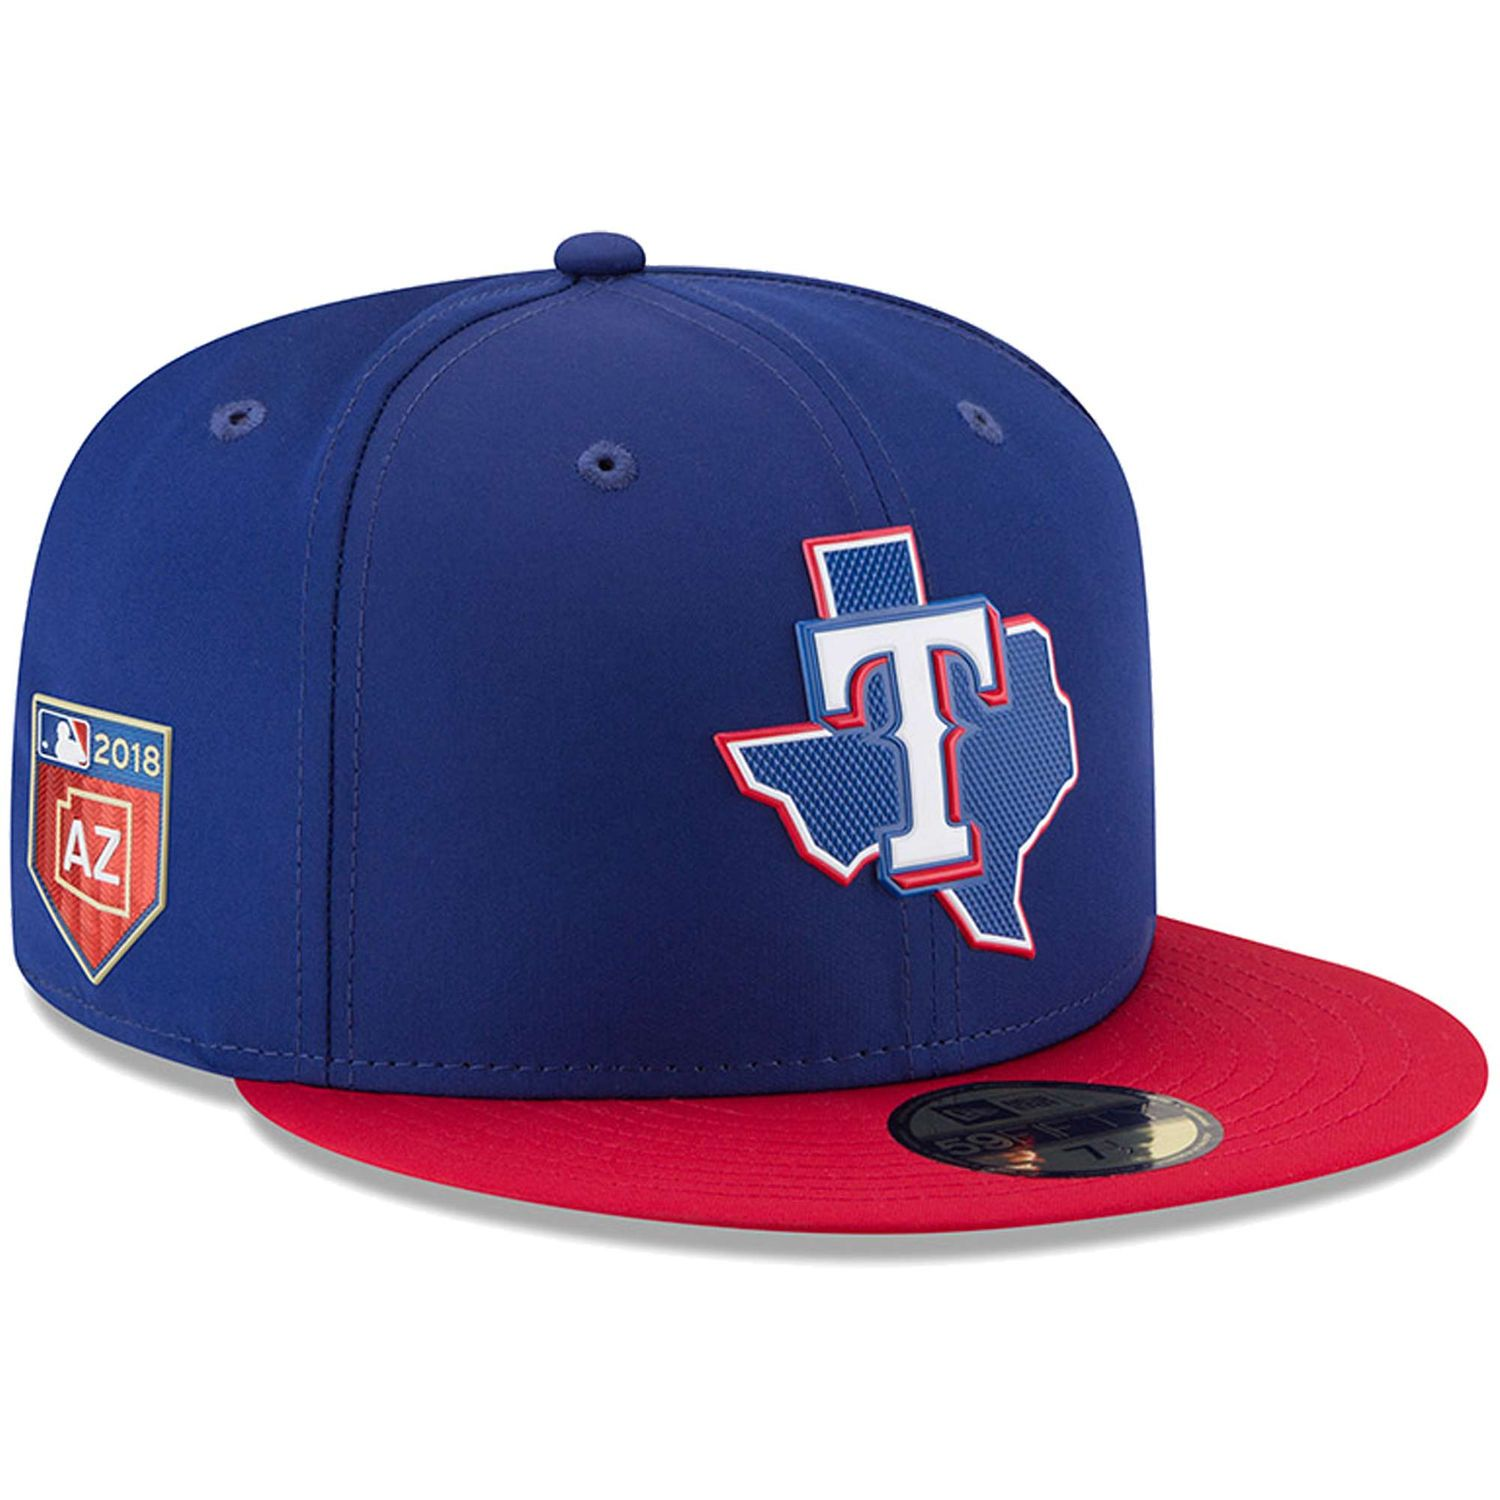 wholesale dealer 25cd2 d61d0 Men s Texas Rangers New Era Navy 2018 Spring Training Collection Prolight  59FIFTY Fitted Hat